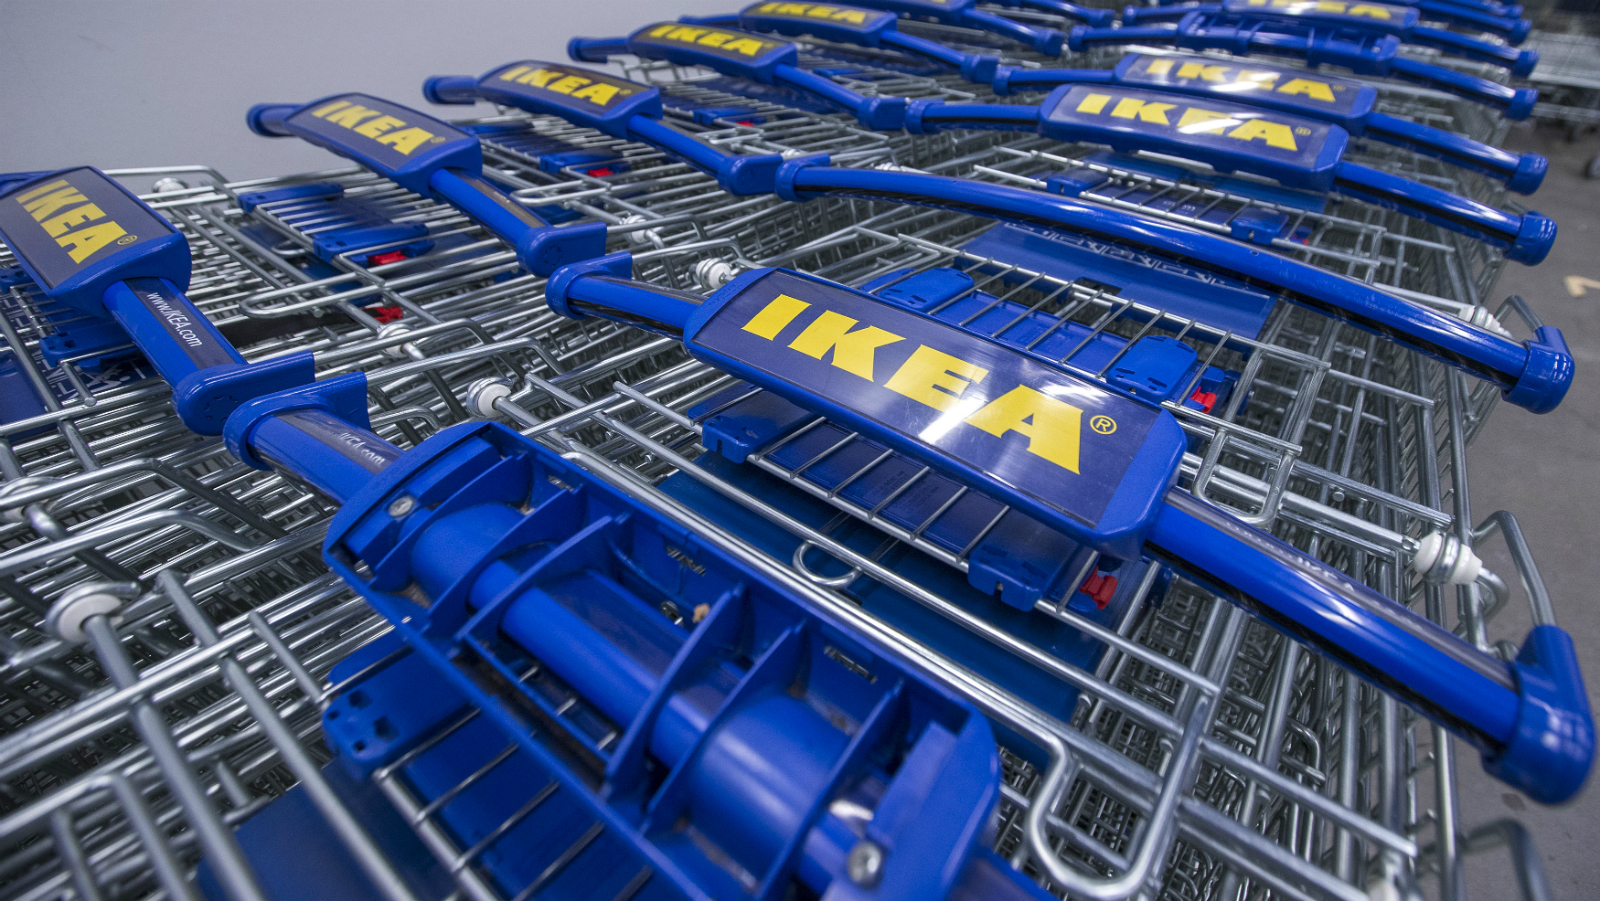 Ikea trolleys outside a concept store in the Netherlands.